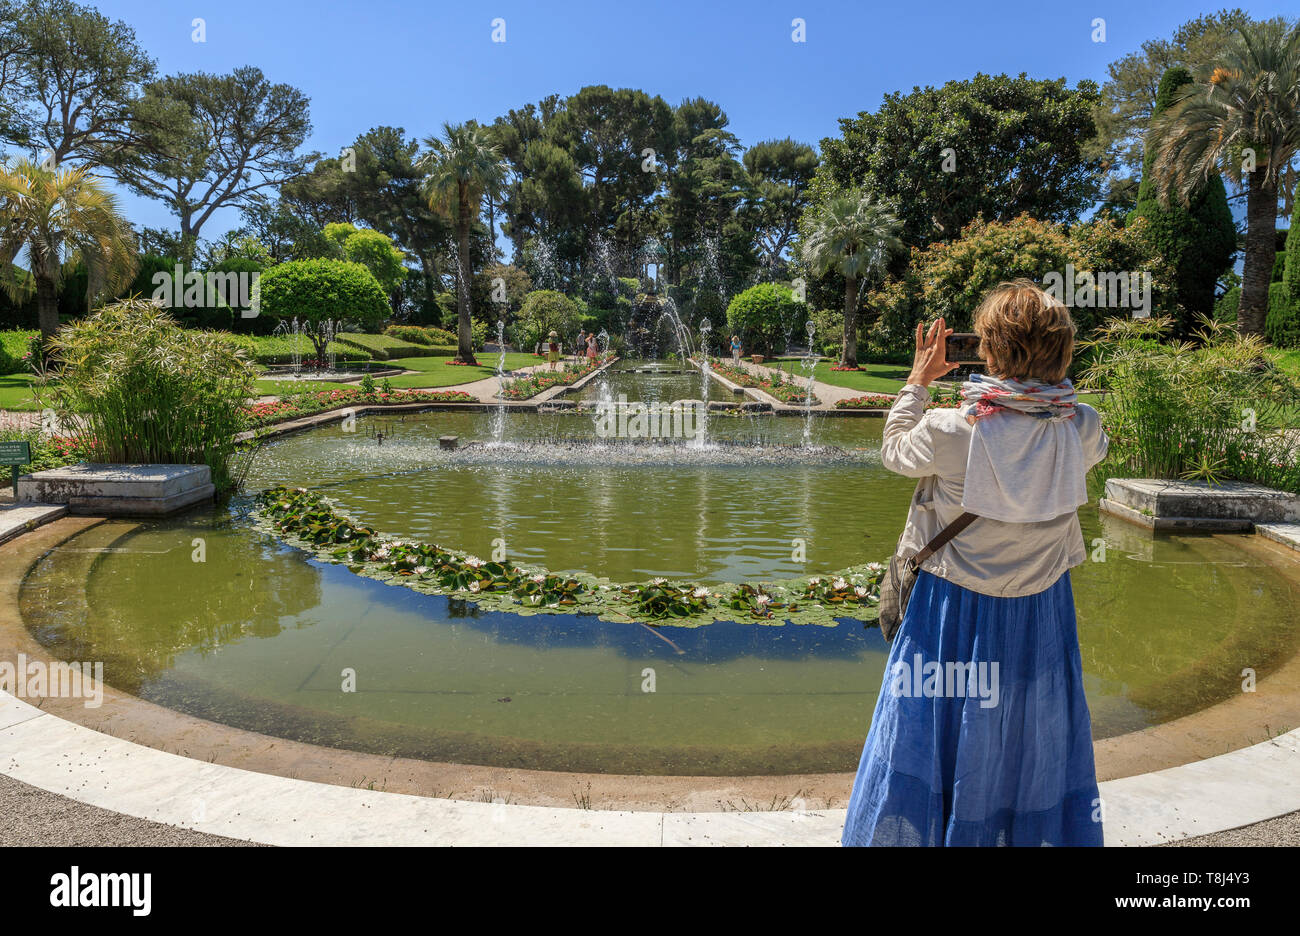 France, Alpes Maritimes, Saint Jean Cap Ferrat, villa and gardens Ephrussi de Rothschild, the French garden, large pond and water jets // France, Alpe - Stock Image